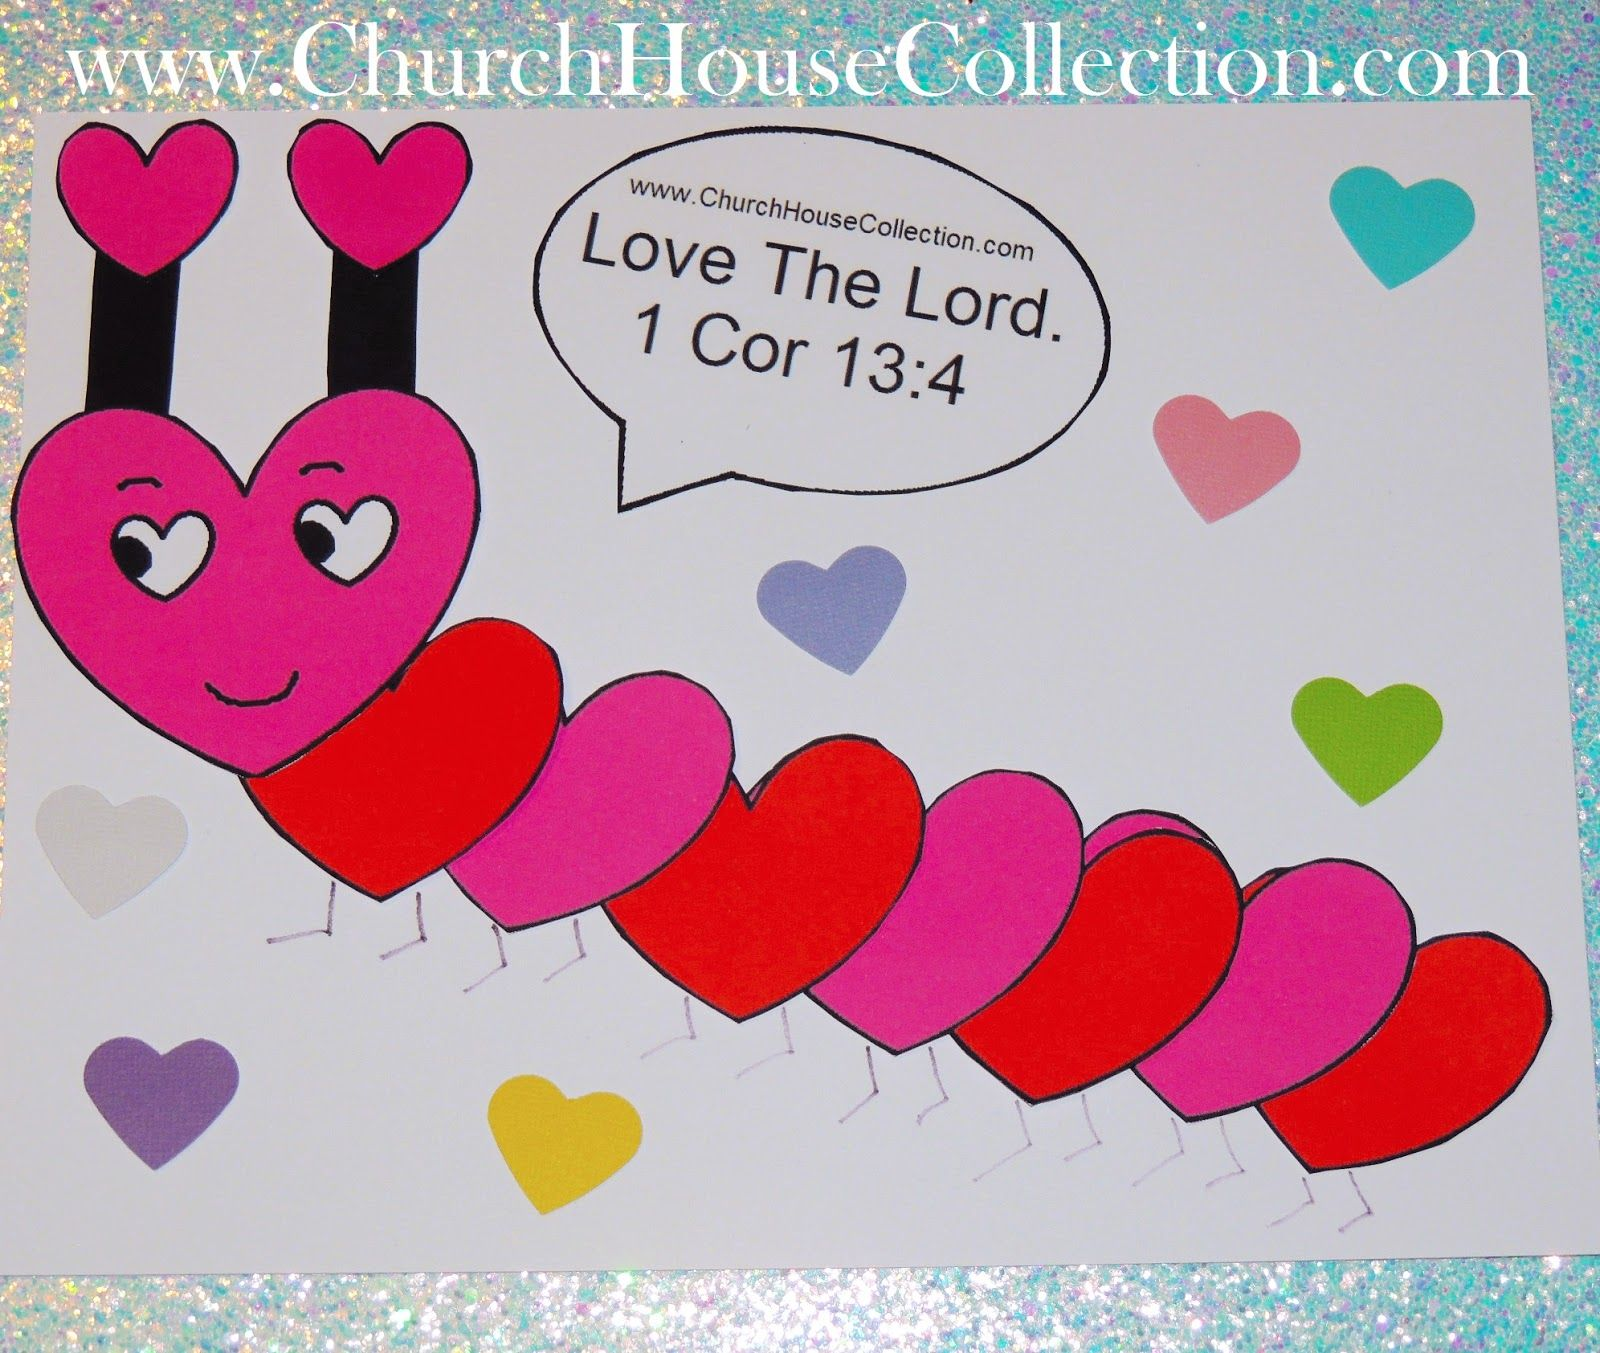 Sunday school crafts for preschool - Heart Caterpillar Valentine S Day Craft For Sunday School Kids Love The Lord 1 Cor 13